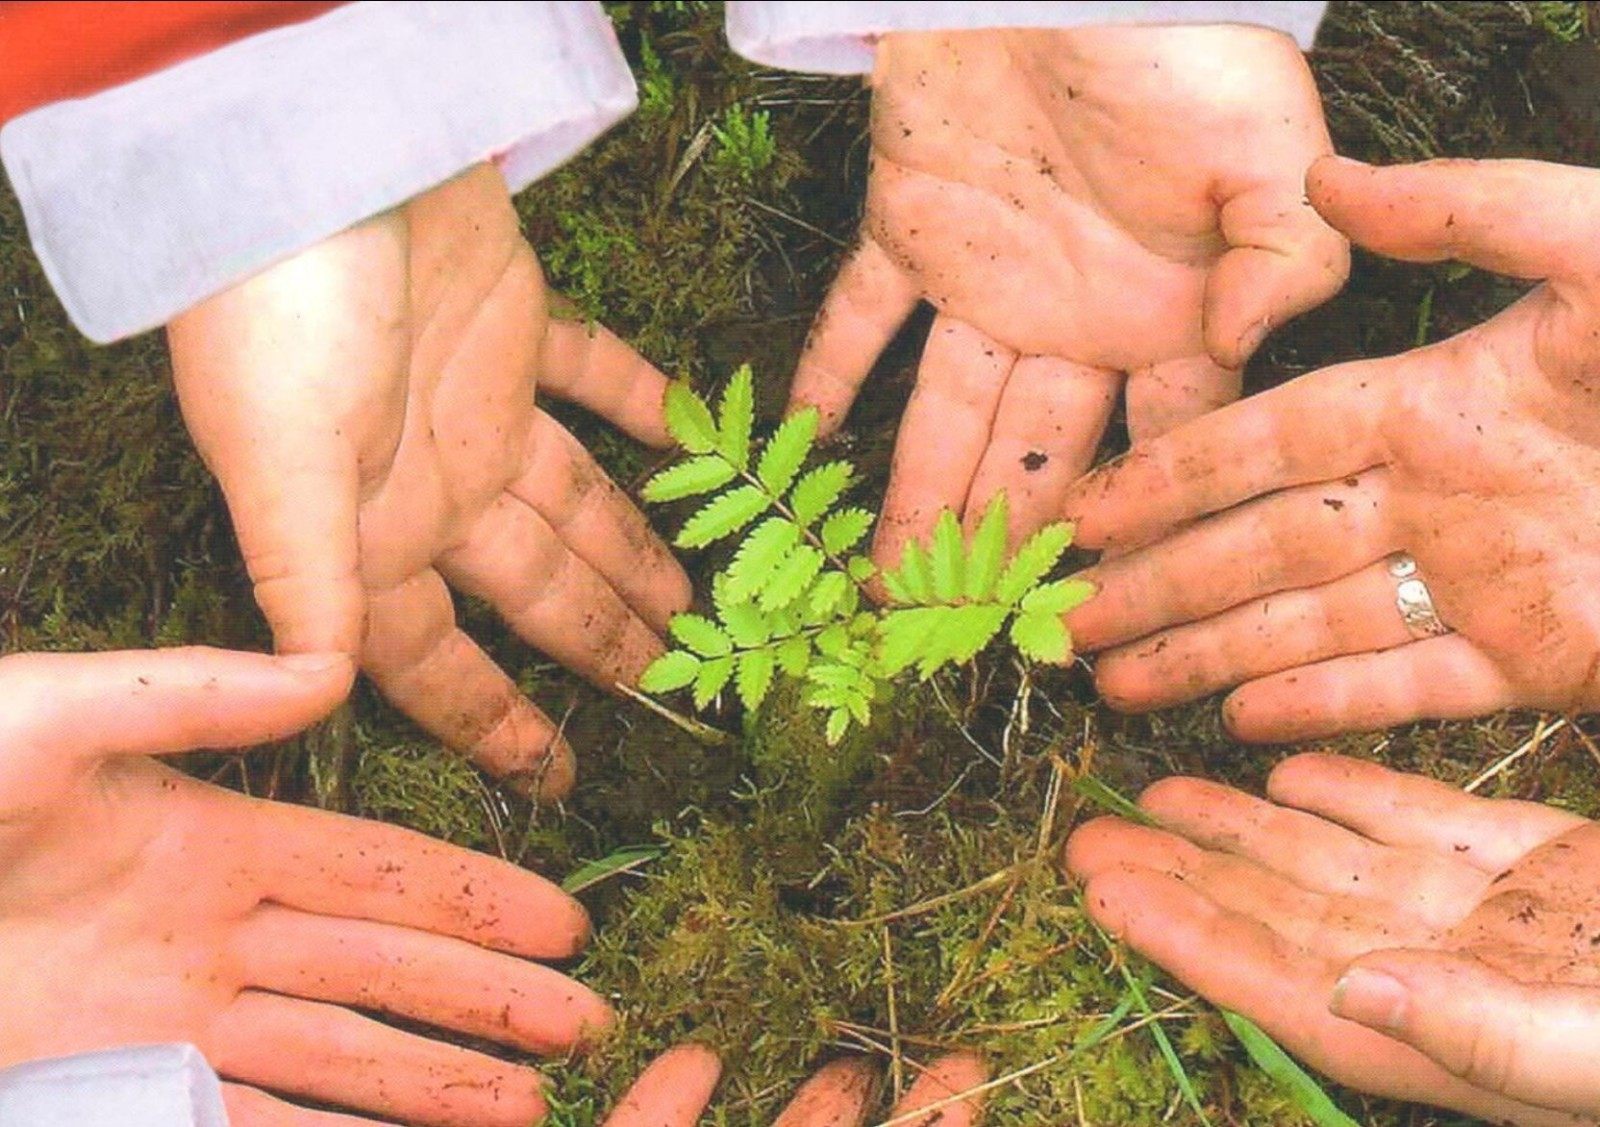 hands with christmas cuffs showing a tree sapling in the middle